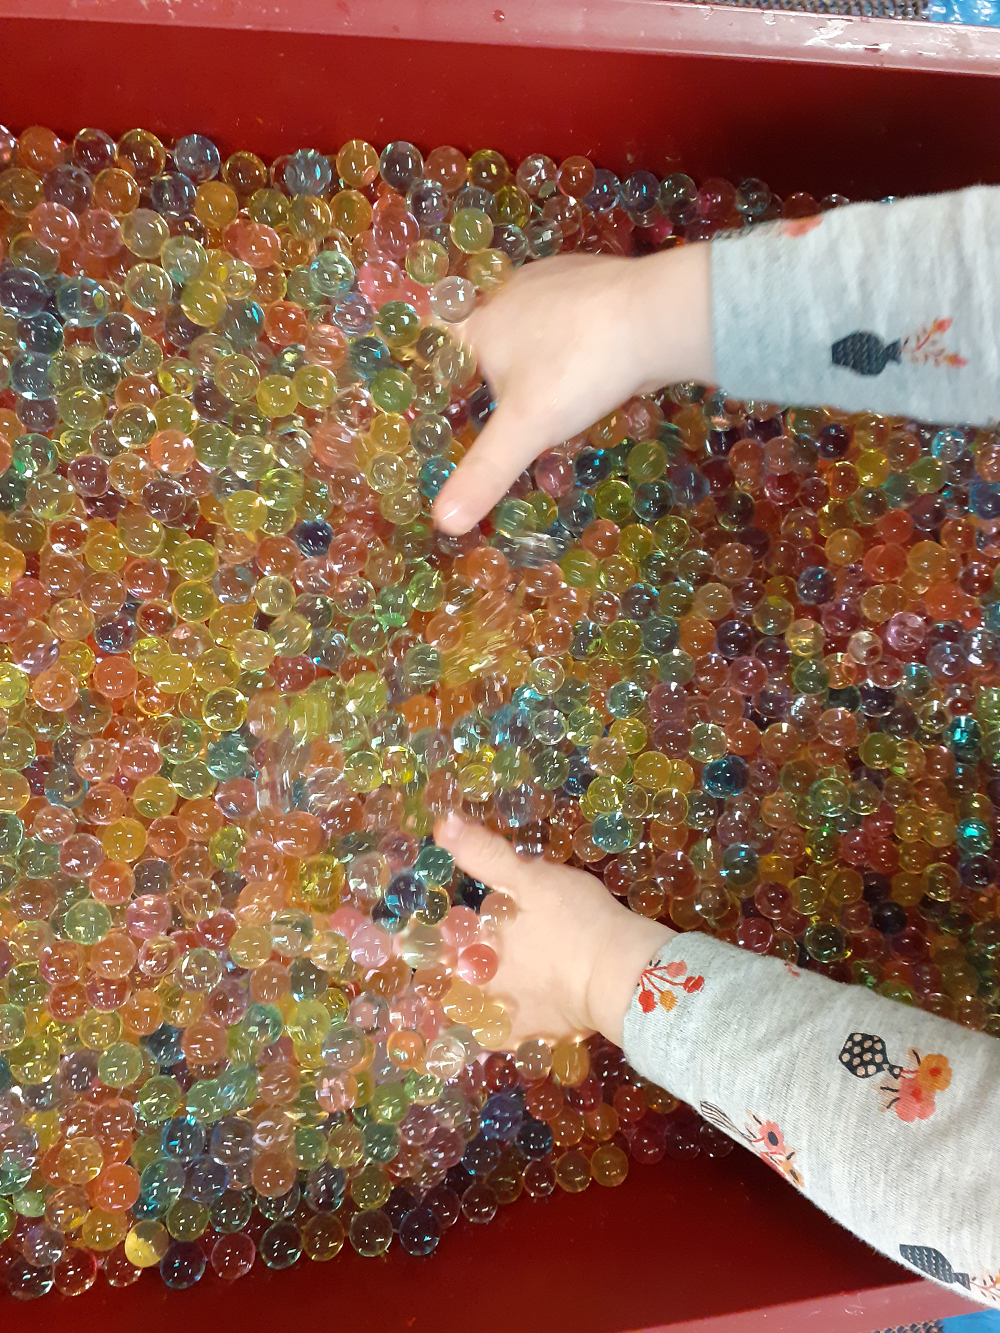 Toddler hands in water beads